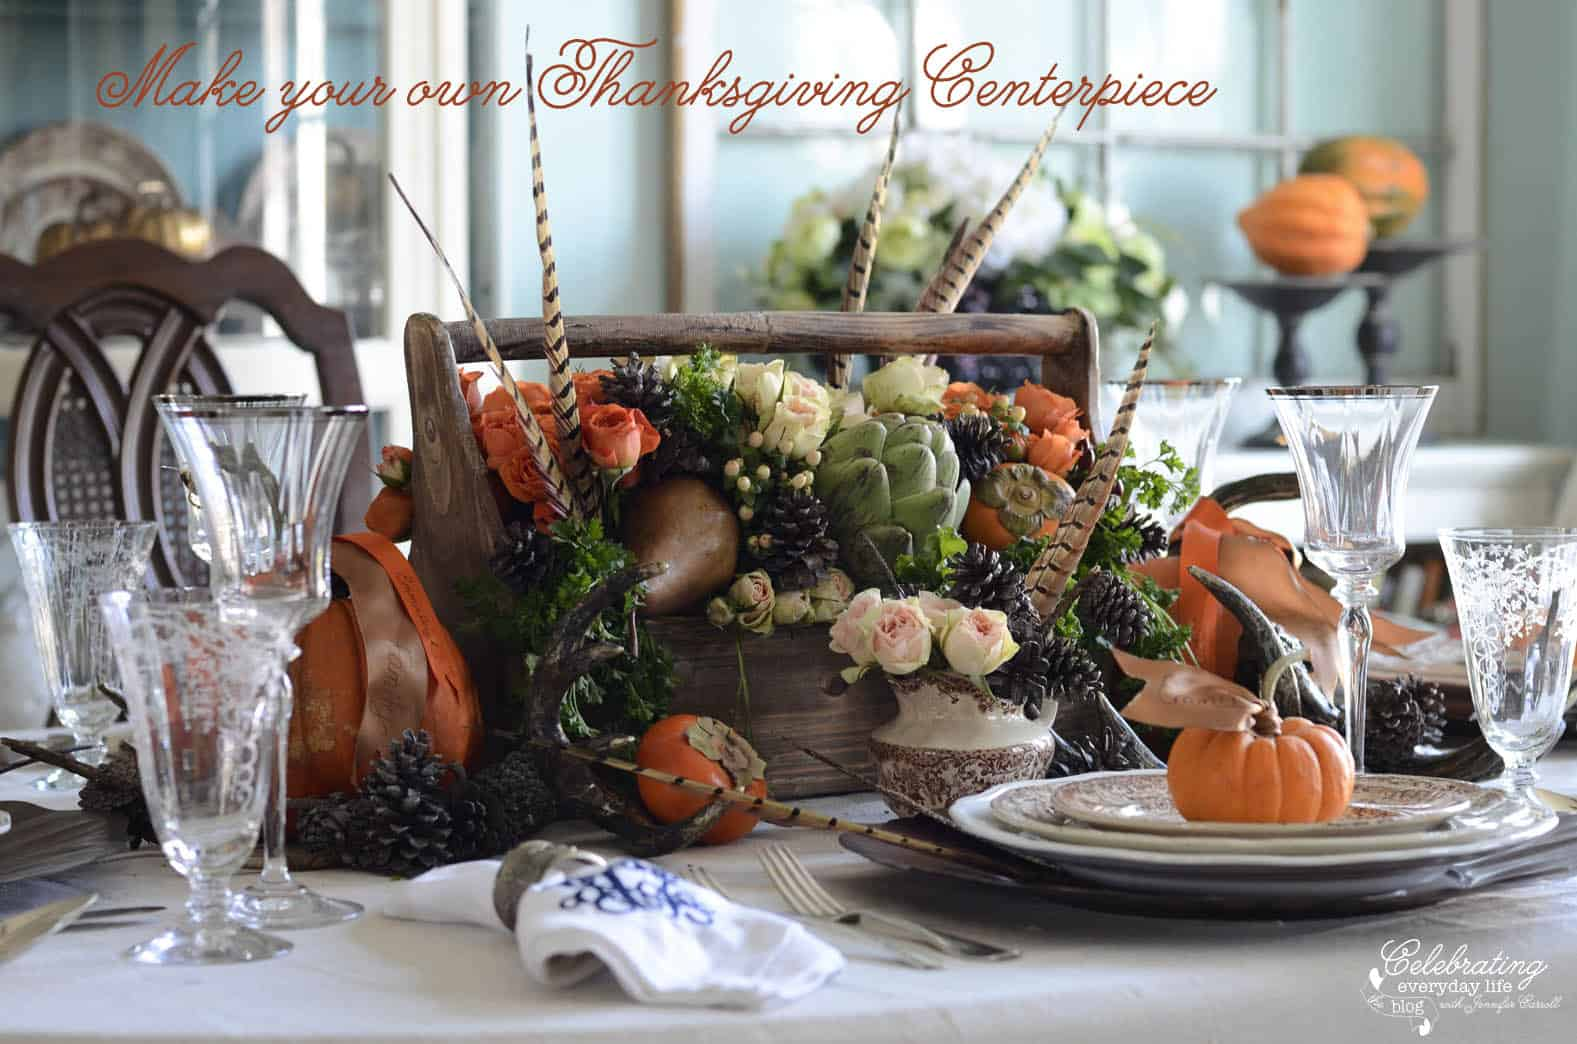 How to make your own Thanksgiving Centerpiece, pheasant feathers, fruit & vegetable centerpiece ideas, artichoke centerpiece